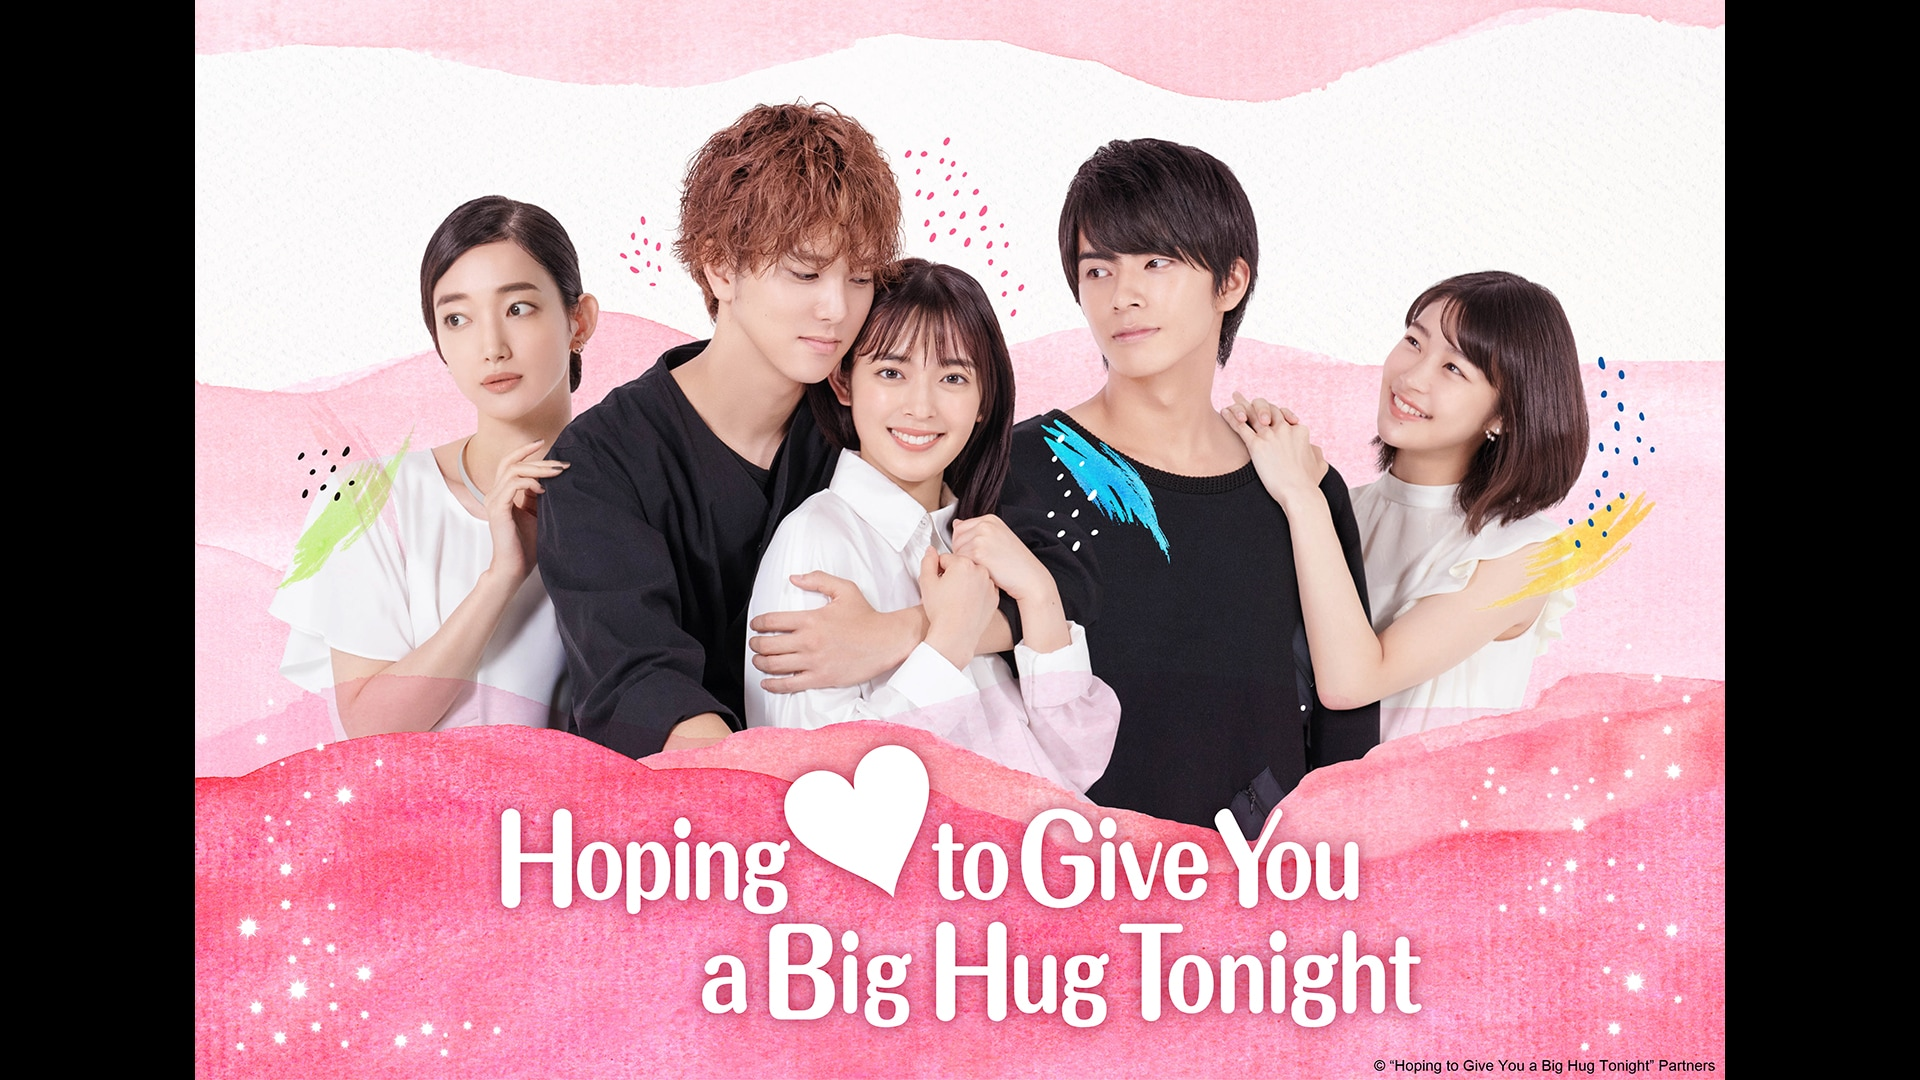 Hoping to Give You a Big Hug Tonight